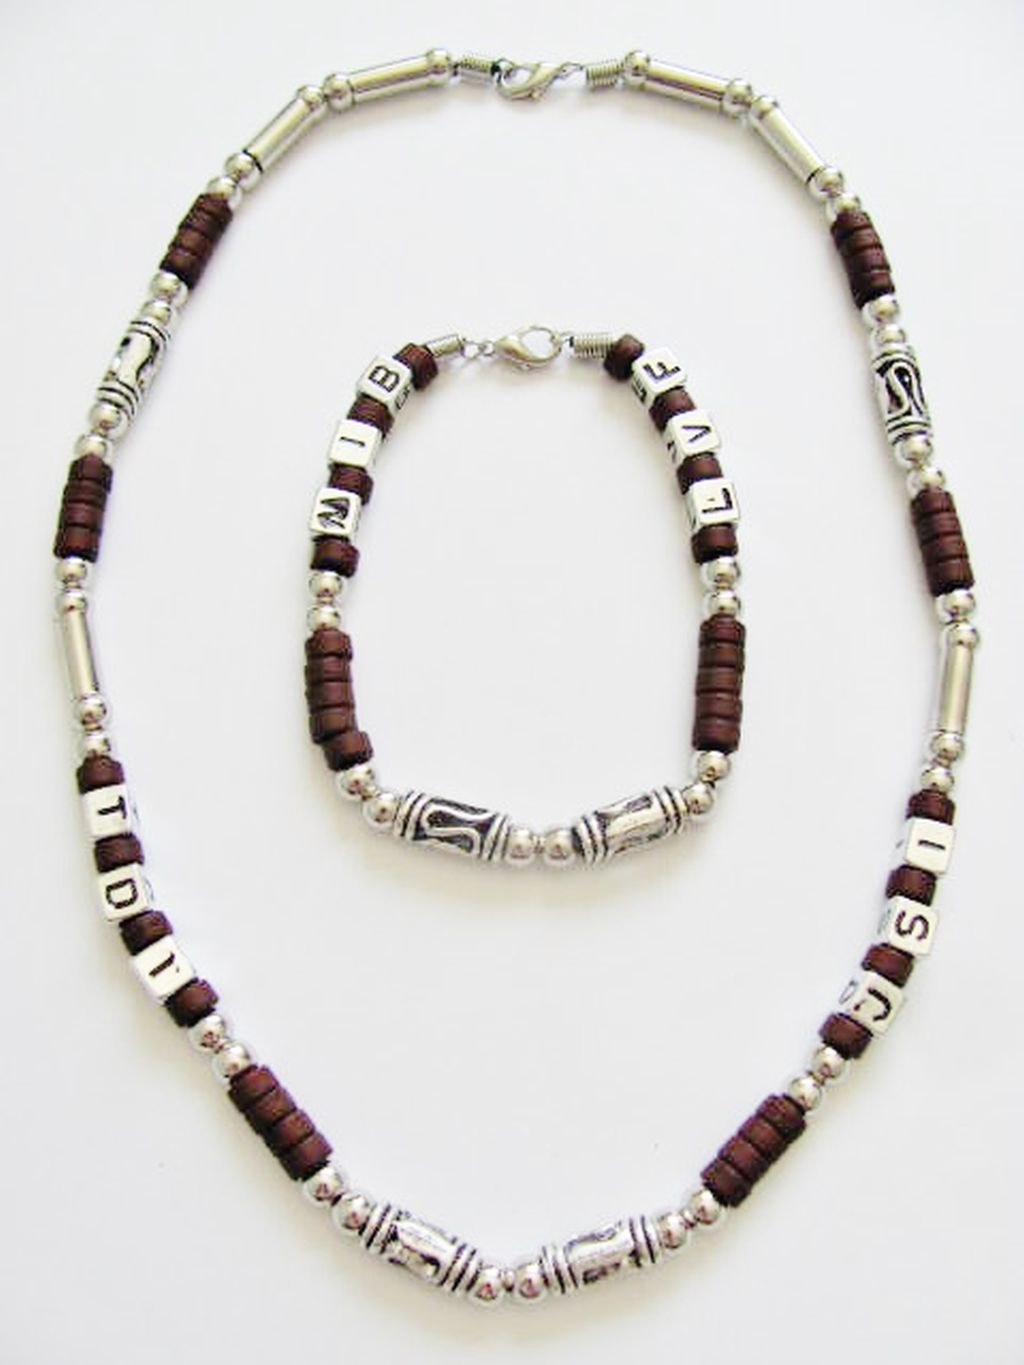 Cancun Hot Chrome/Brown Random Letters Bead Necklace Bracelet, Men's Surfer Style